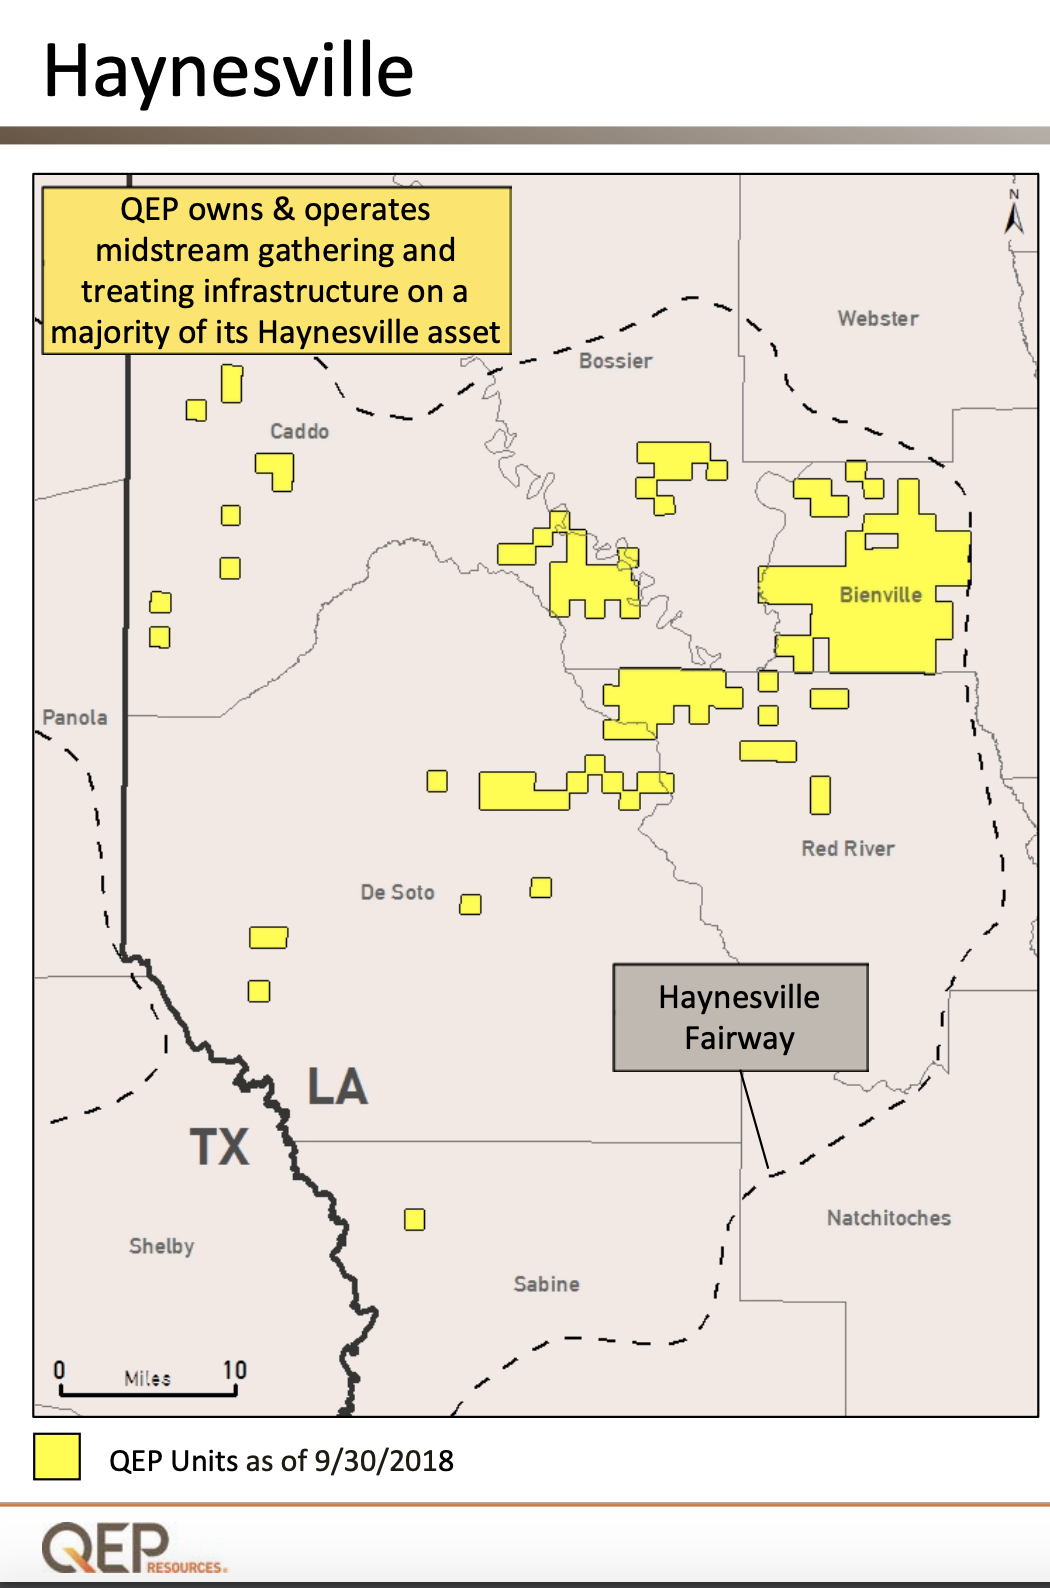 QEP Resources Haynesville Asset Map (Source: QEP Resources Inc.)